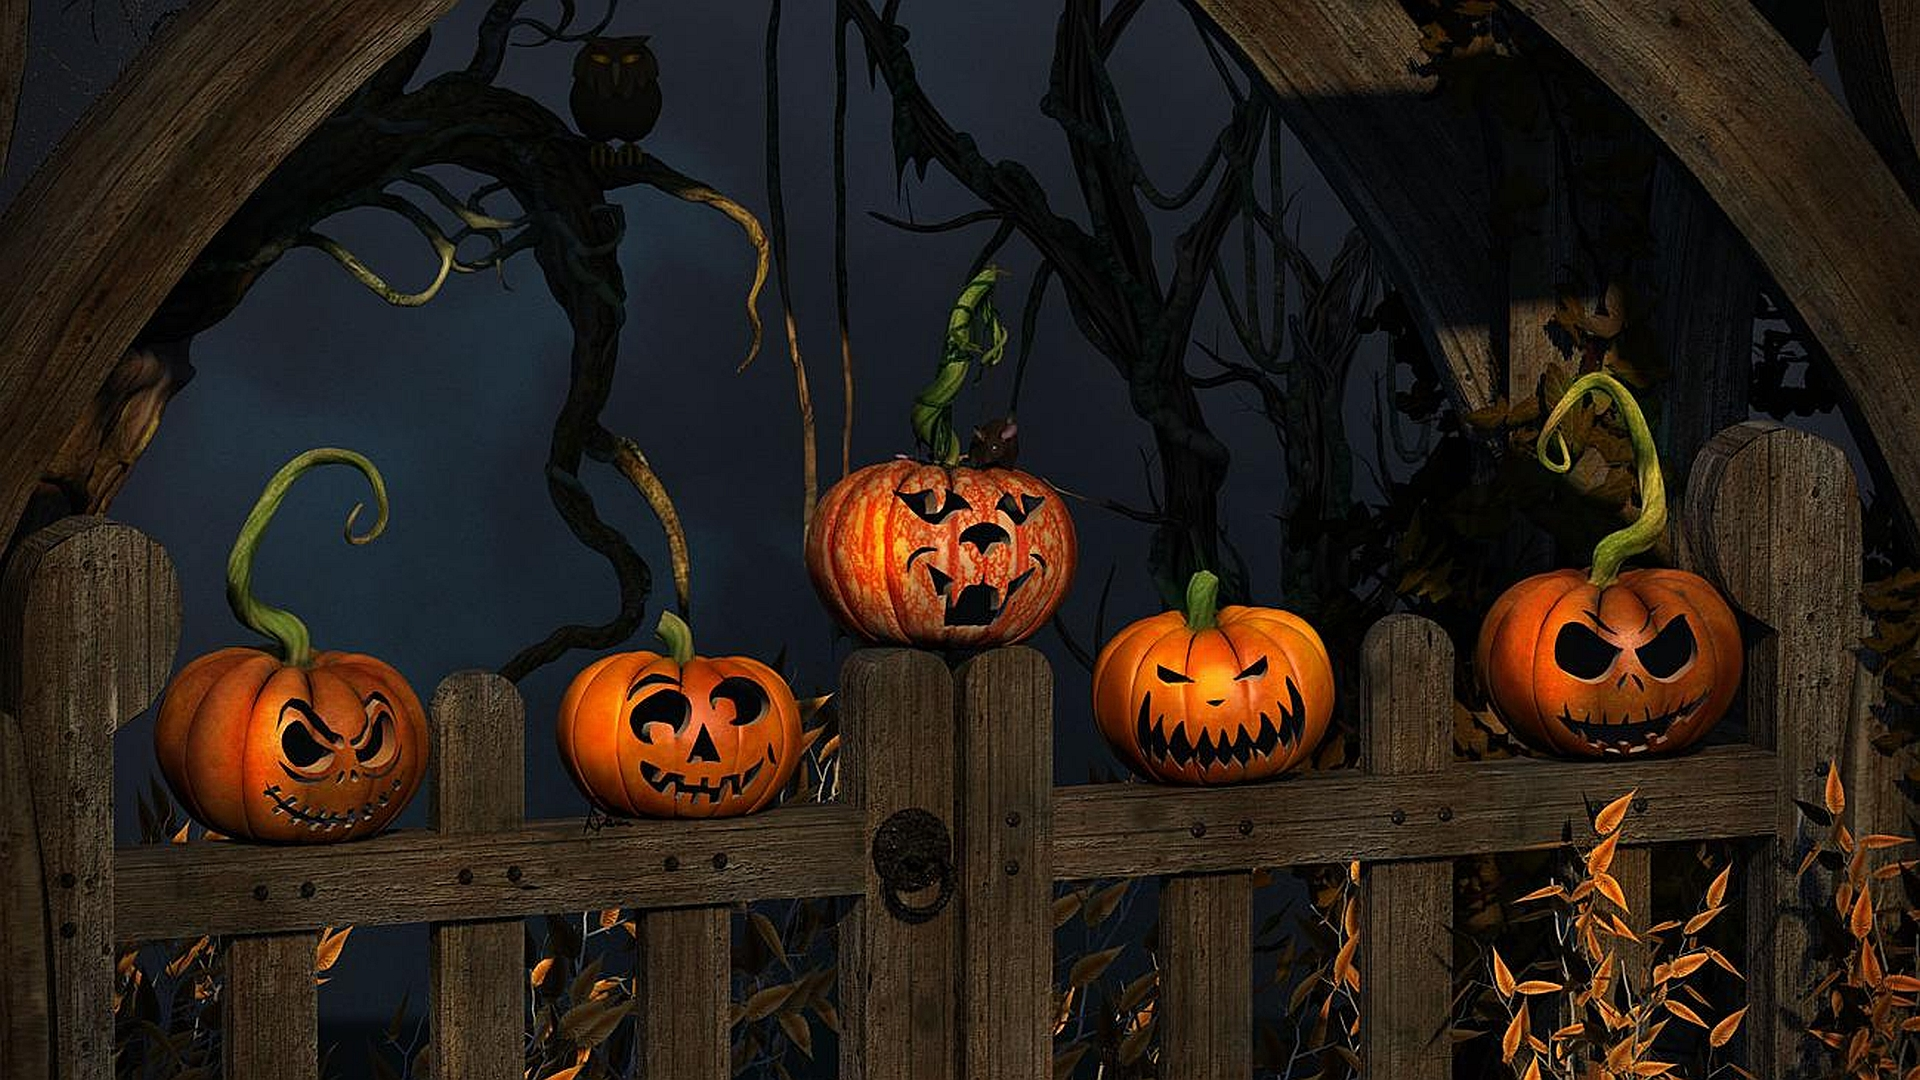 House Design Free Download Halloween Desktop Wallpaper 1920x1080 Wallpapersafari